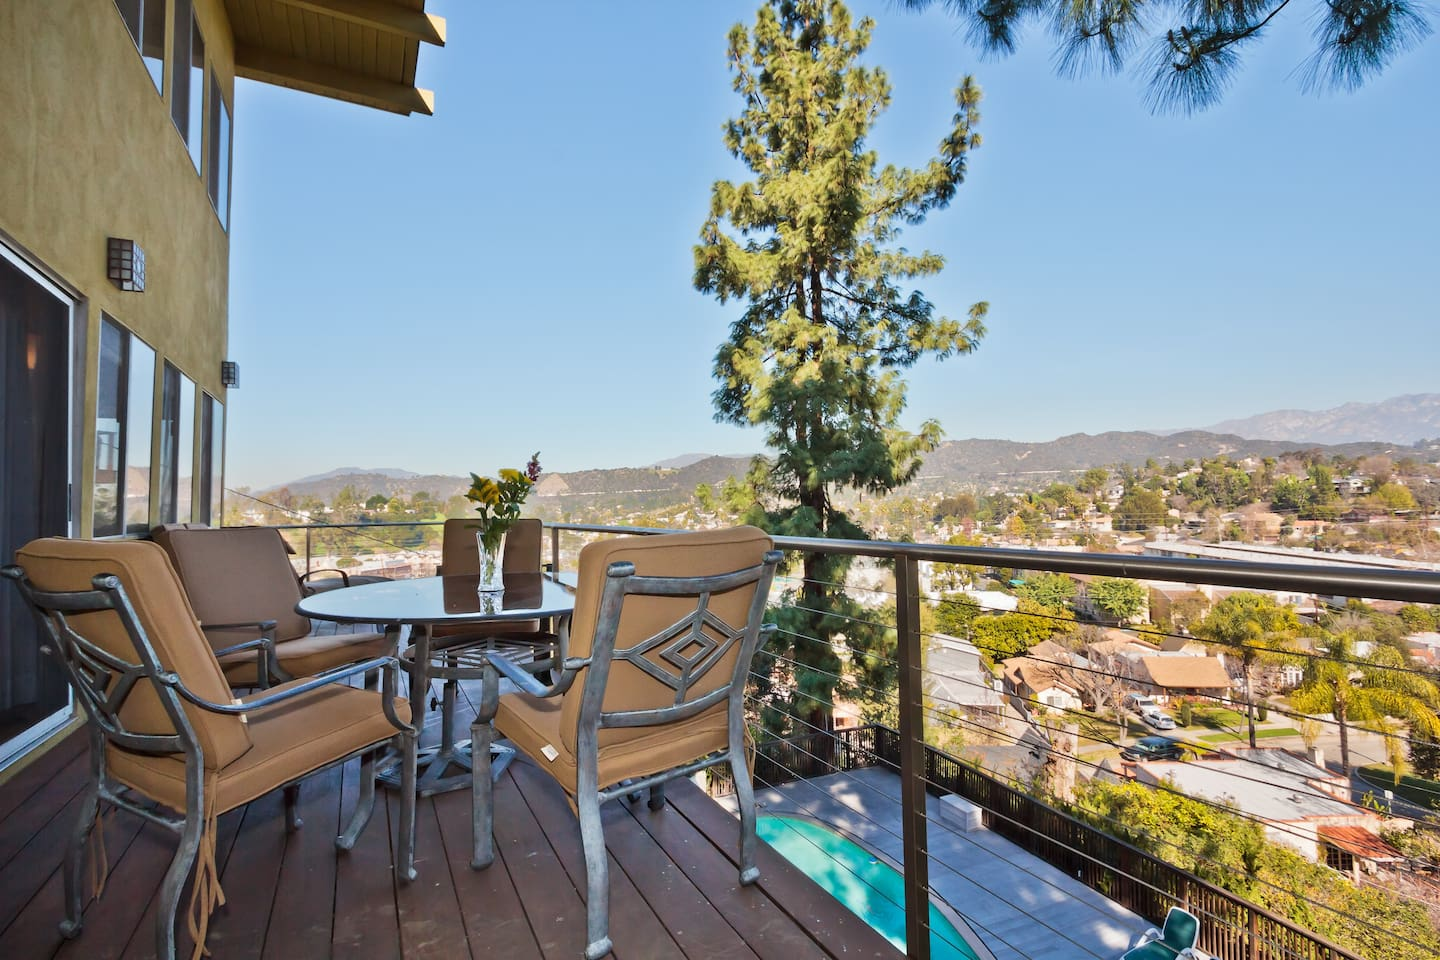 Enjoy the view from the balcony!